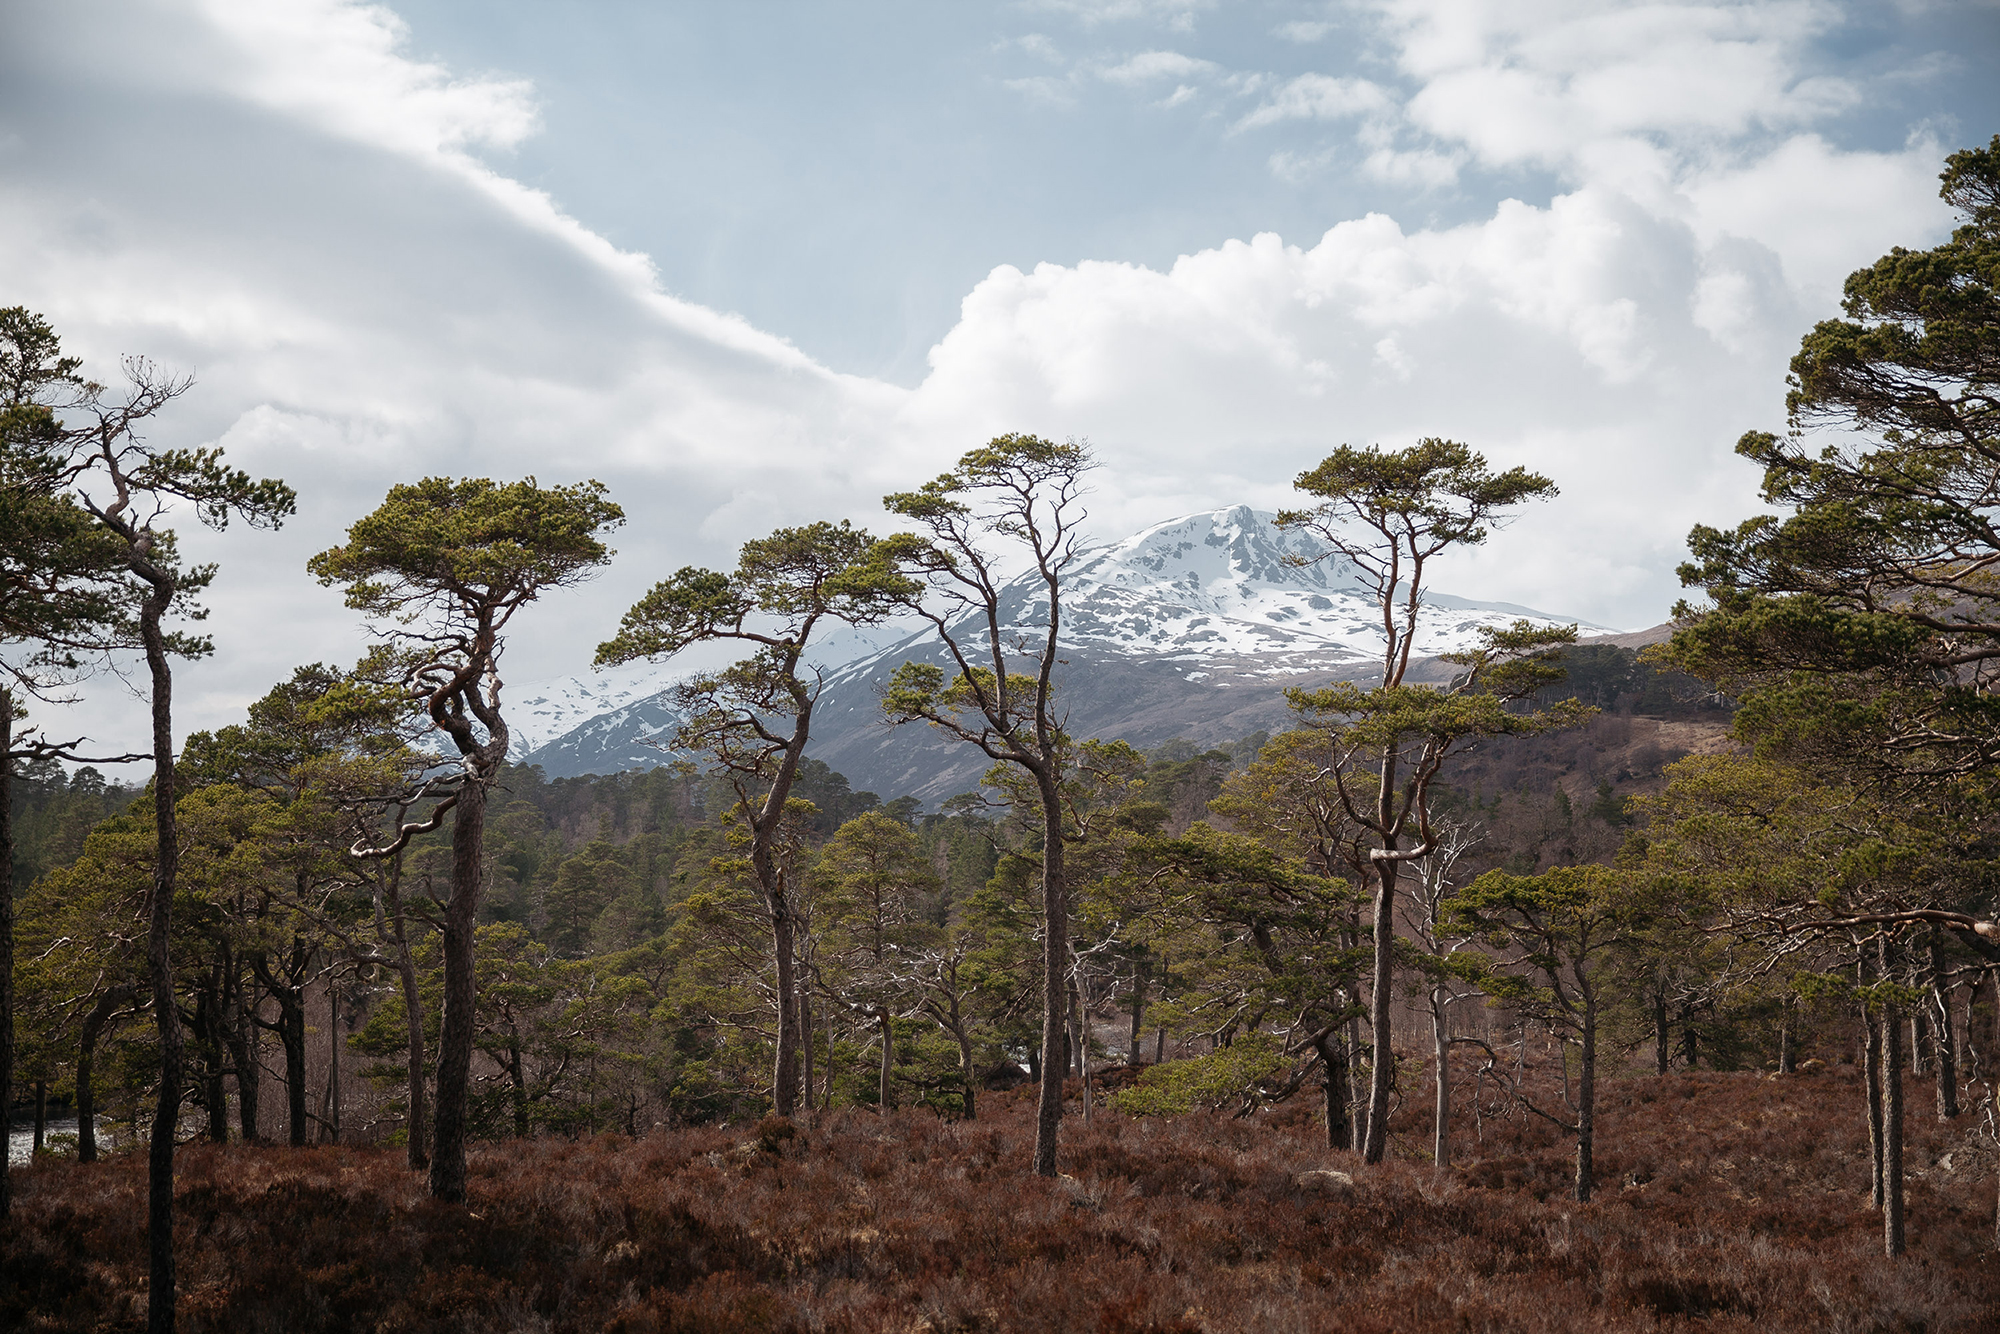 Early spring in the Highlands. A snowy Sgurr na Lapaich framed by Scots Pine.